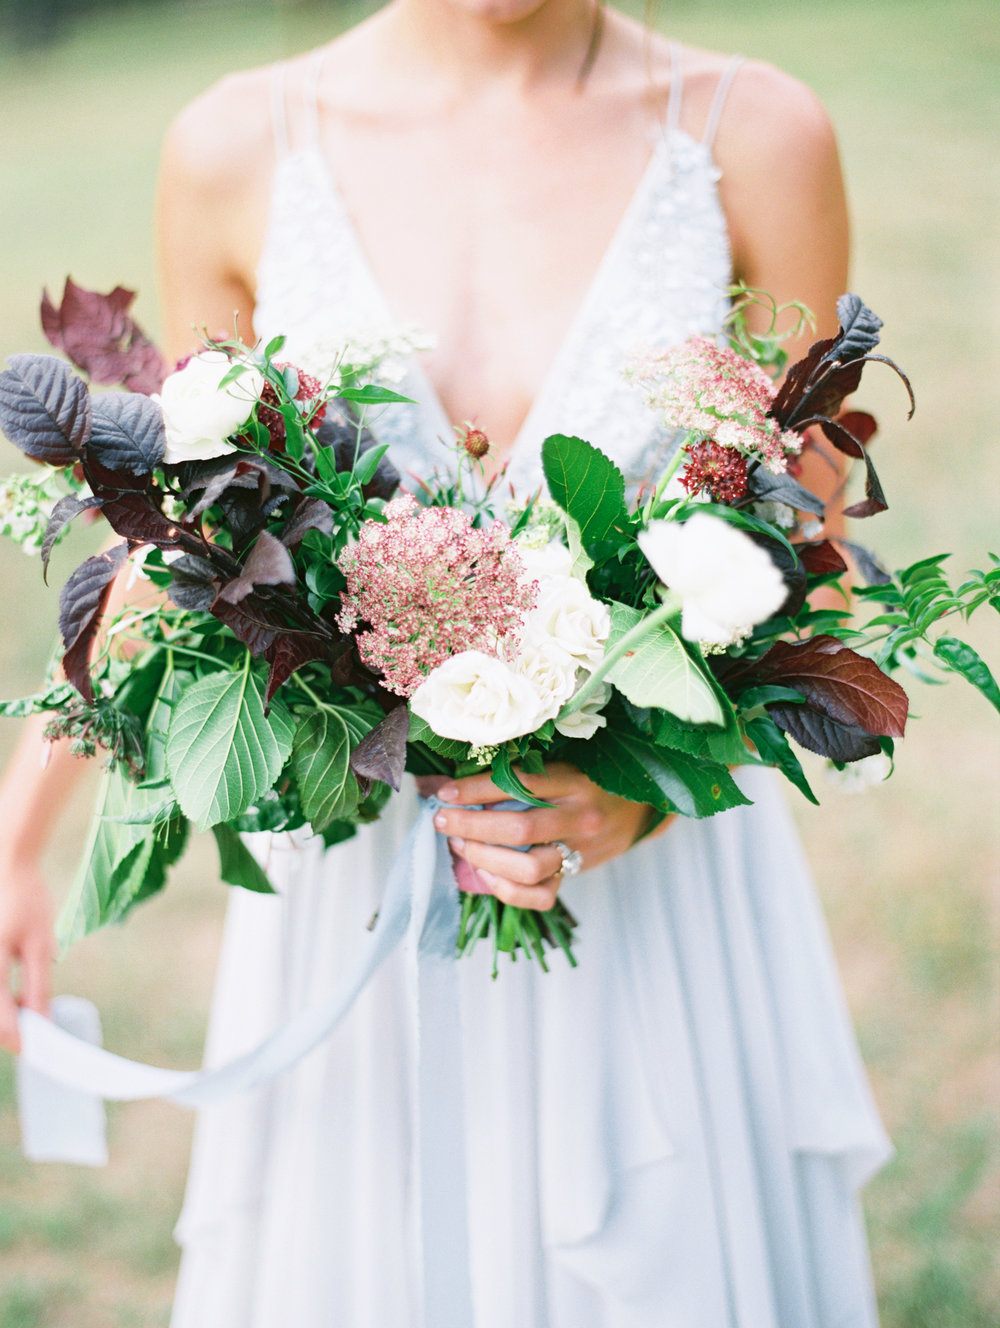 lush-organic-wedding-flowers